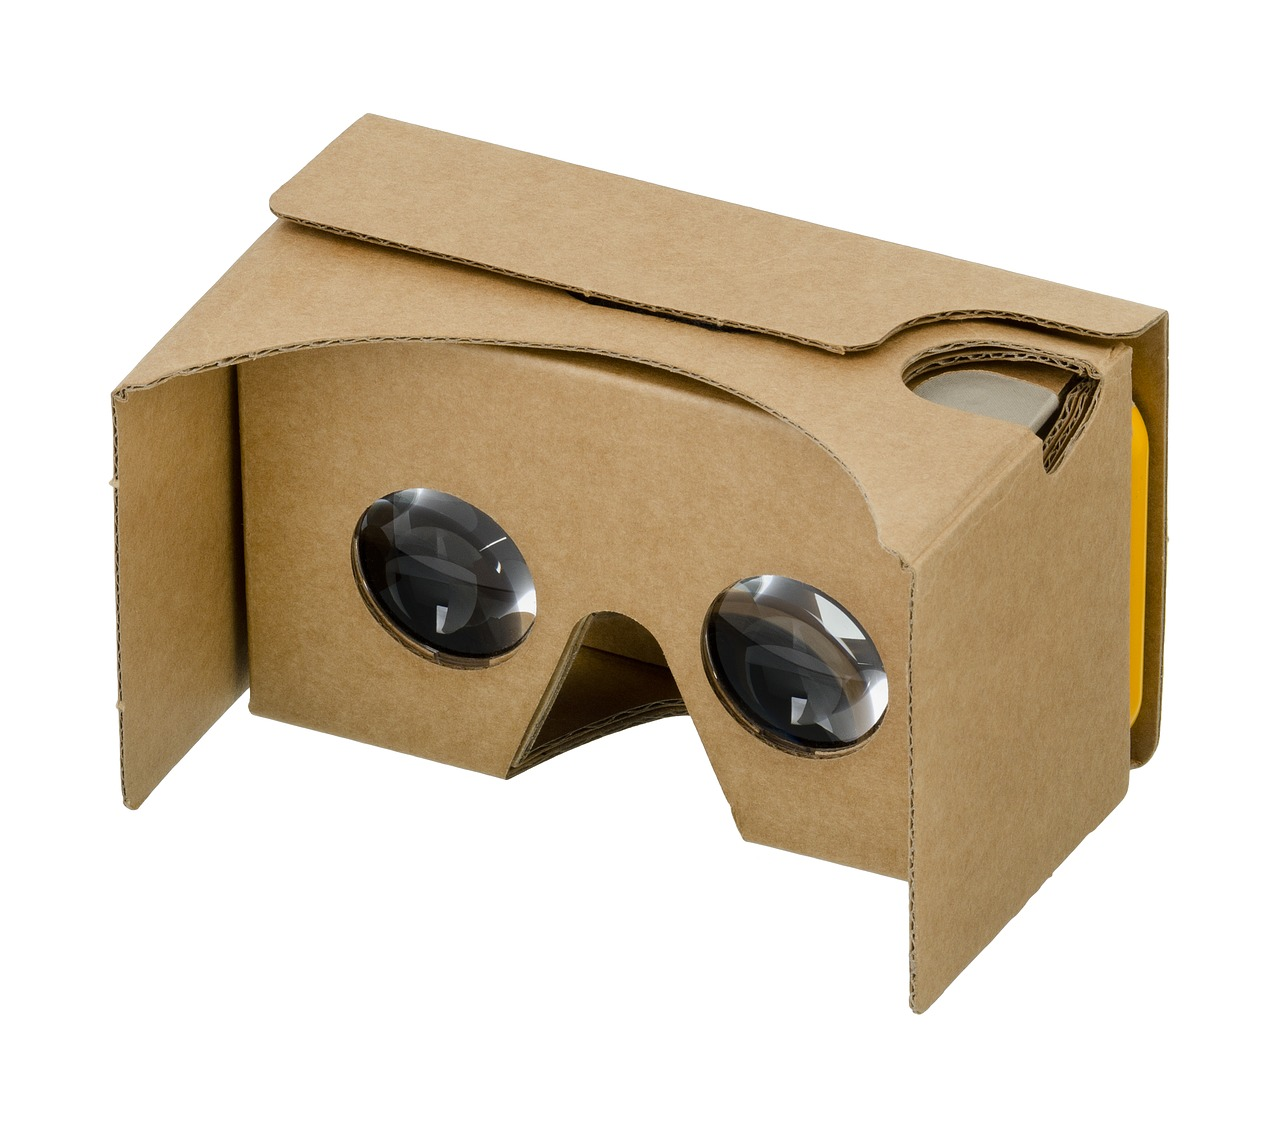 Cardboard VR Headset how to watch vr videos without headset